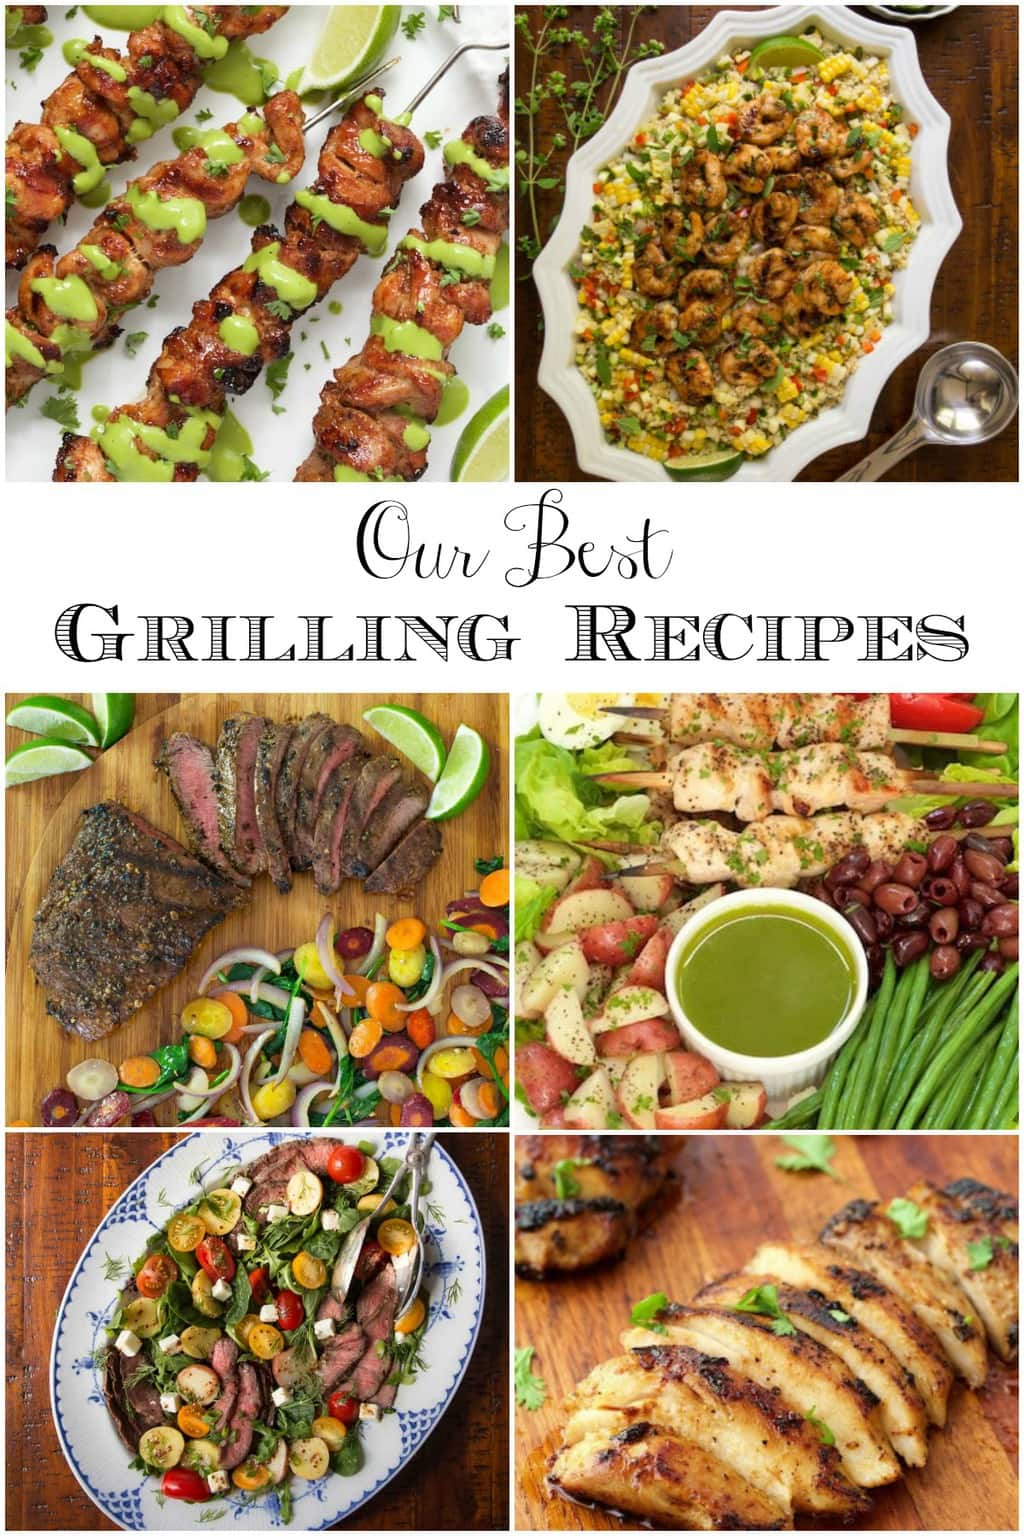 Photo collage of pics of Our Best Grilling Recipes from The Café Sucre Farine.